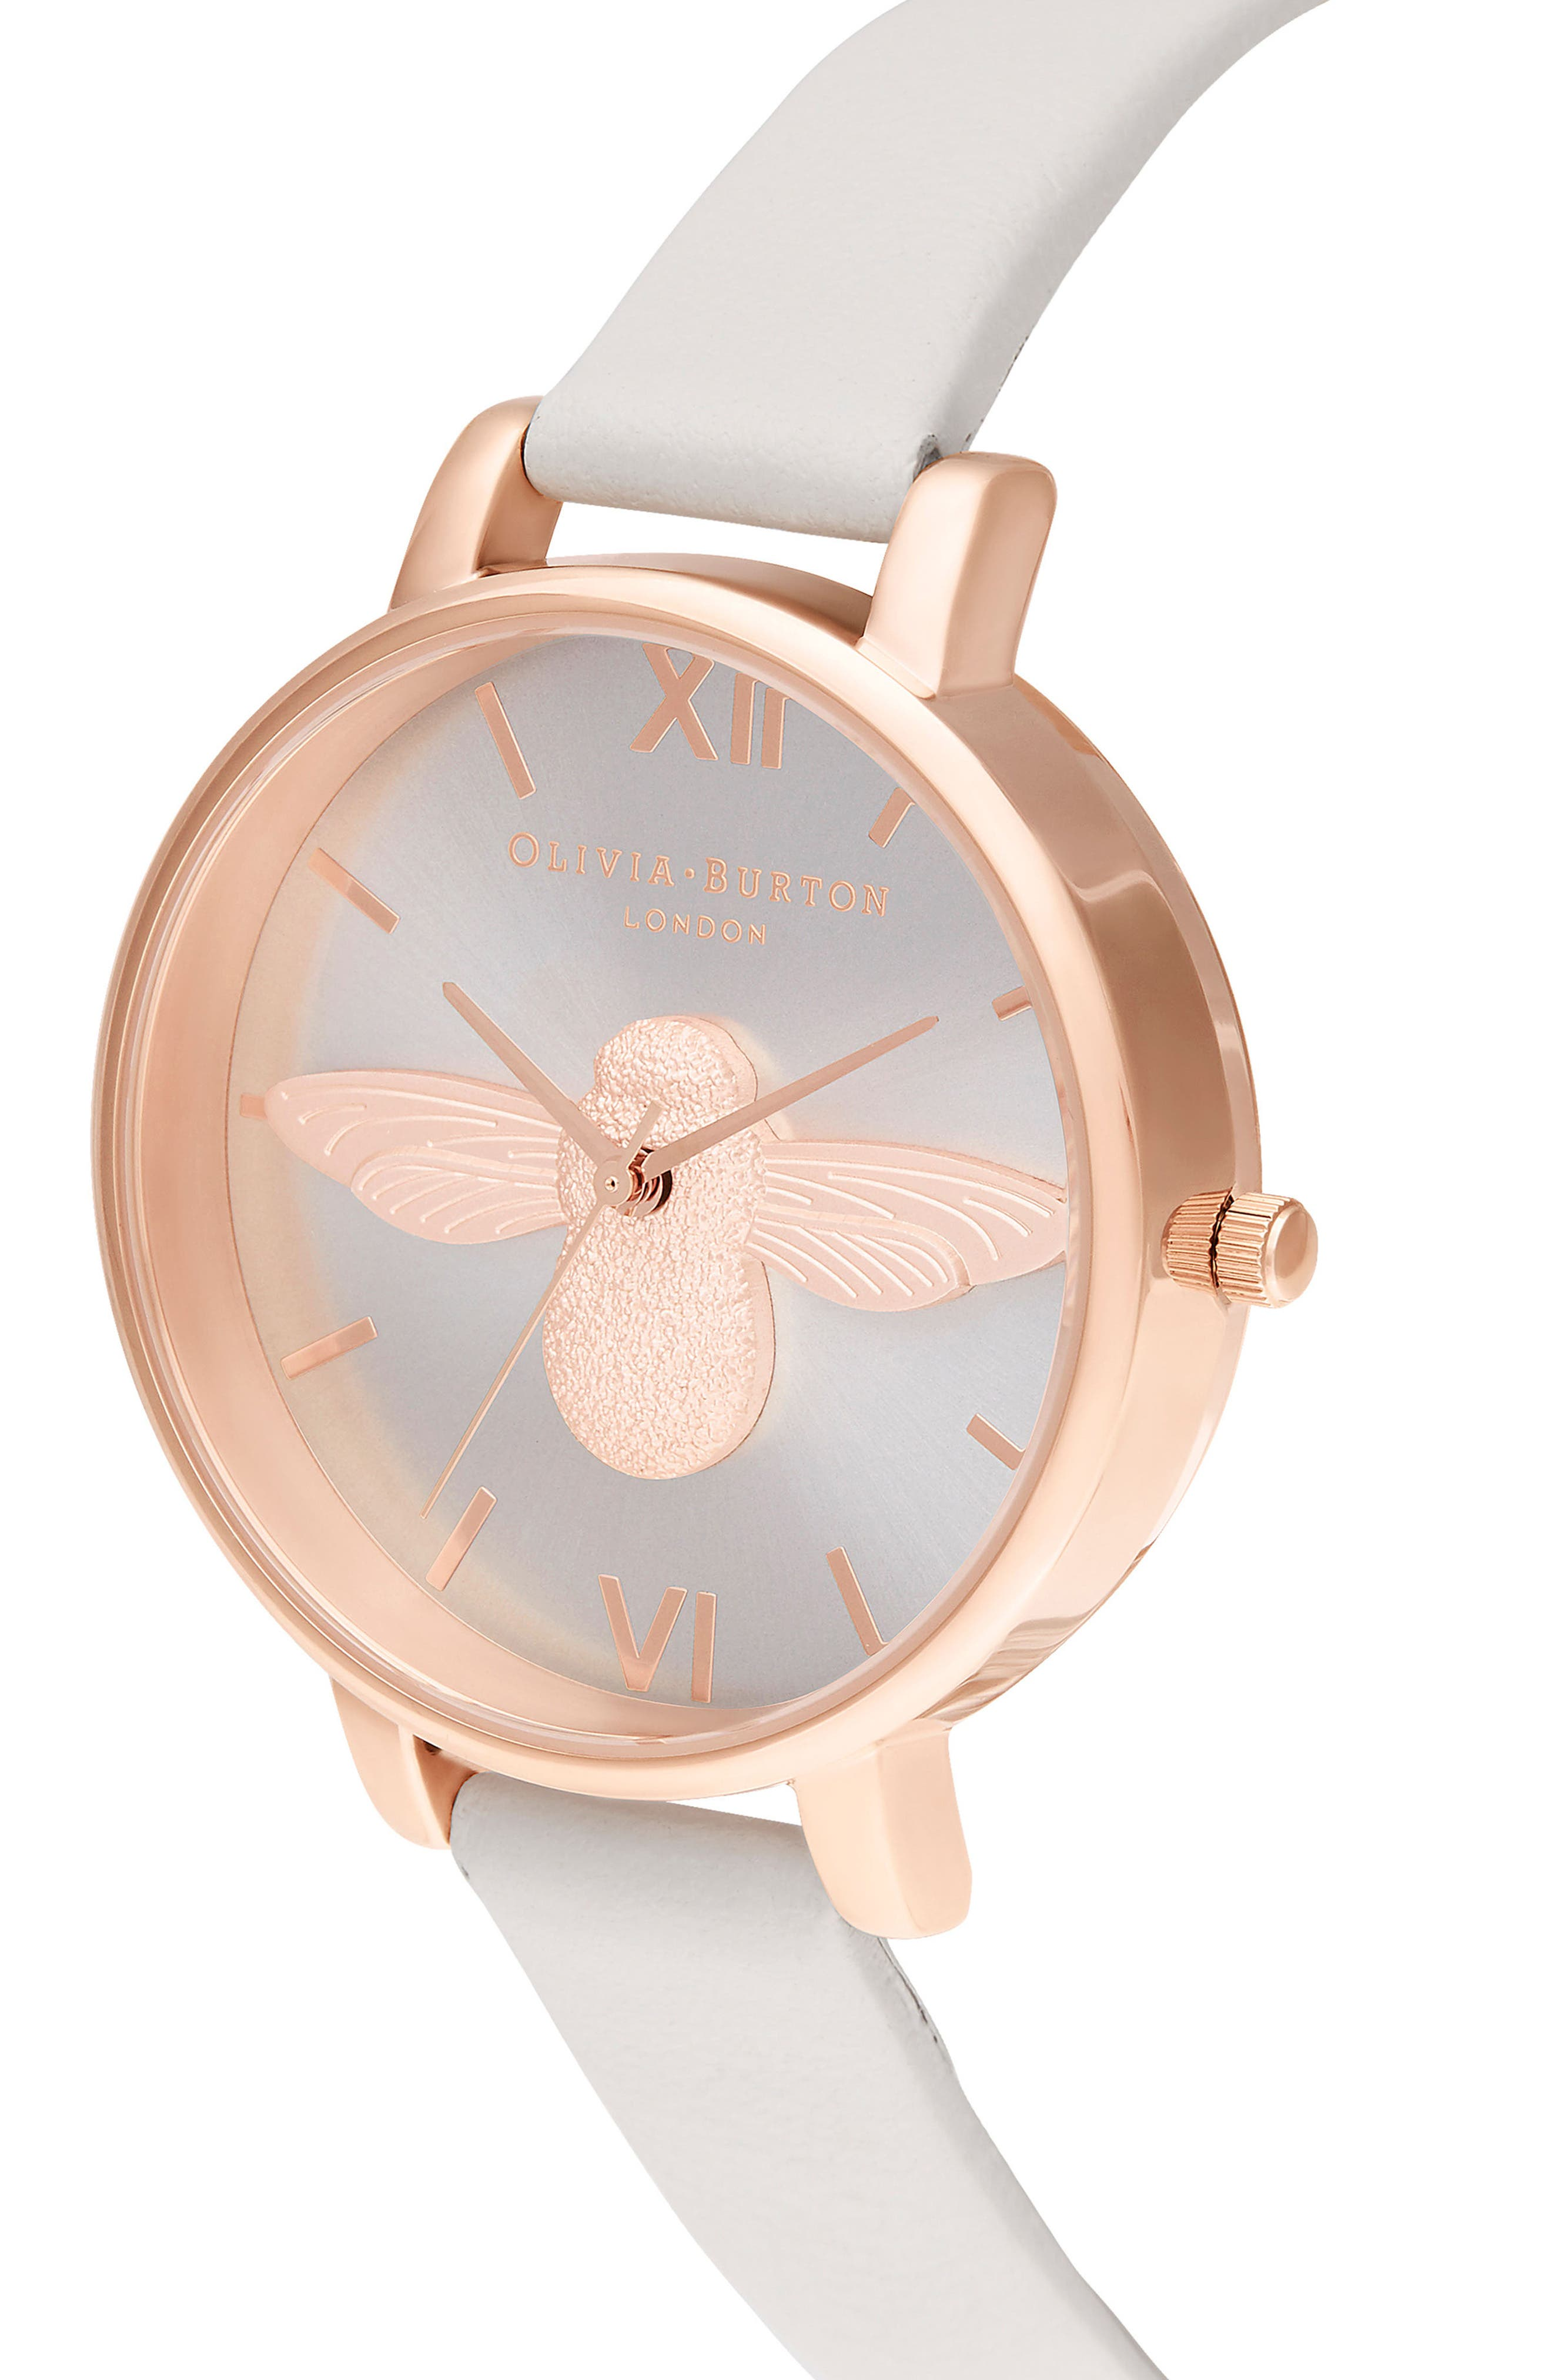 OLIVIA BURTON, 'Molded Bee' Leather Strap Watch, 38mm, Alternate thumbnail 4, color, BLUSH/ SUNRAY BEE/ ROSE GOLD